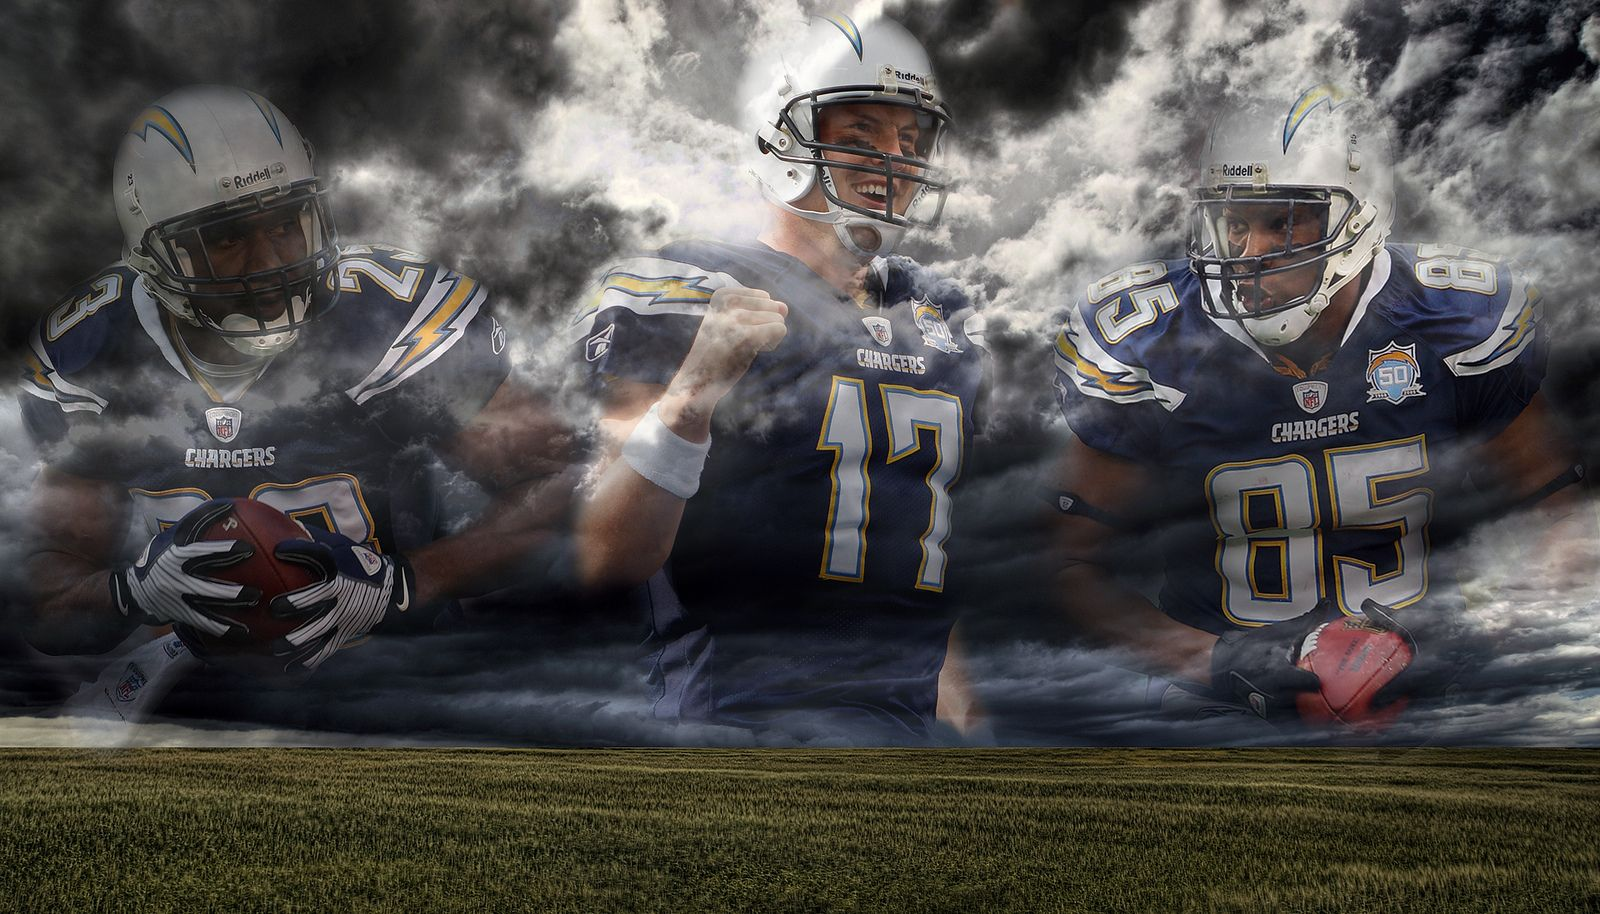 Awesome Wallpaper San Diego Chargers Q Jammer P Rivers A